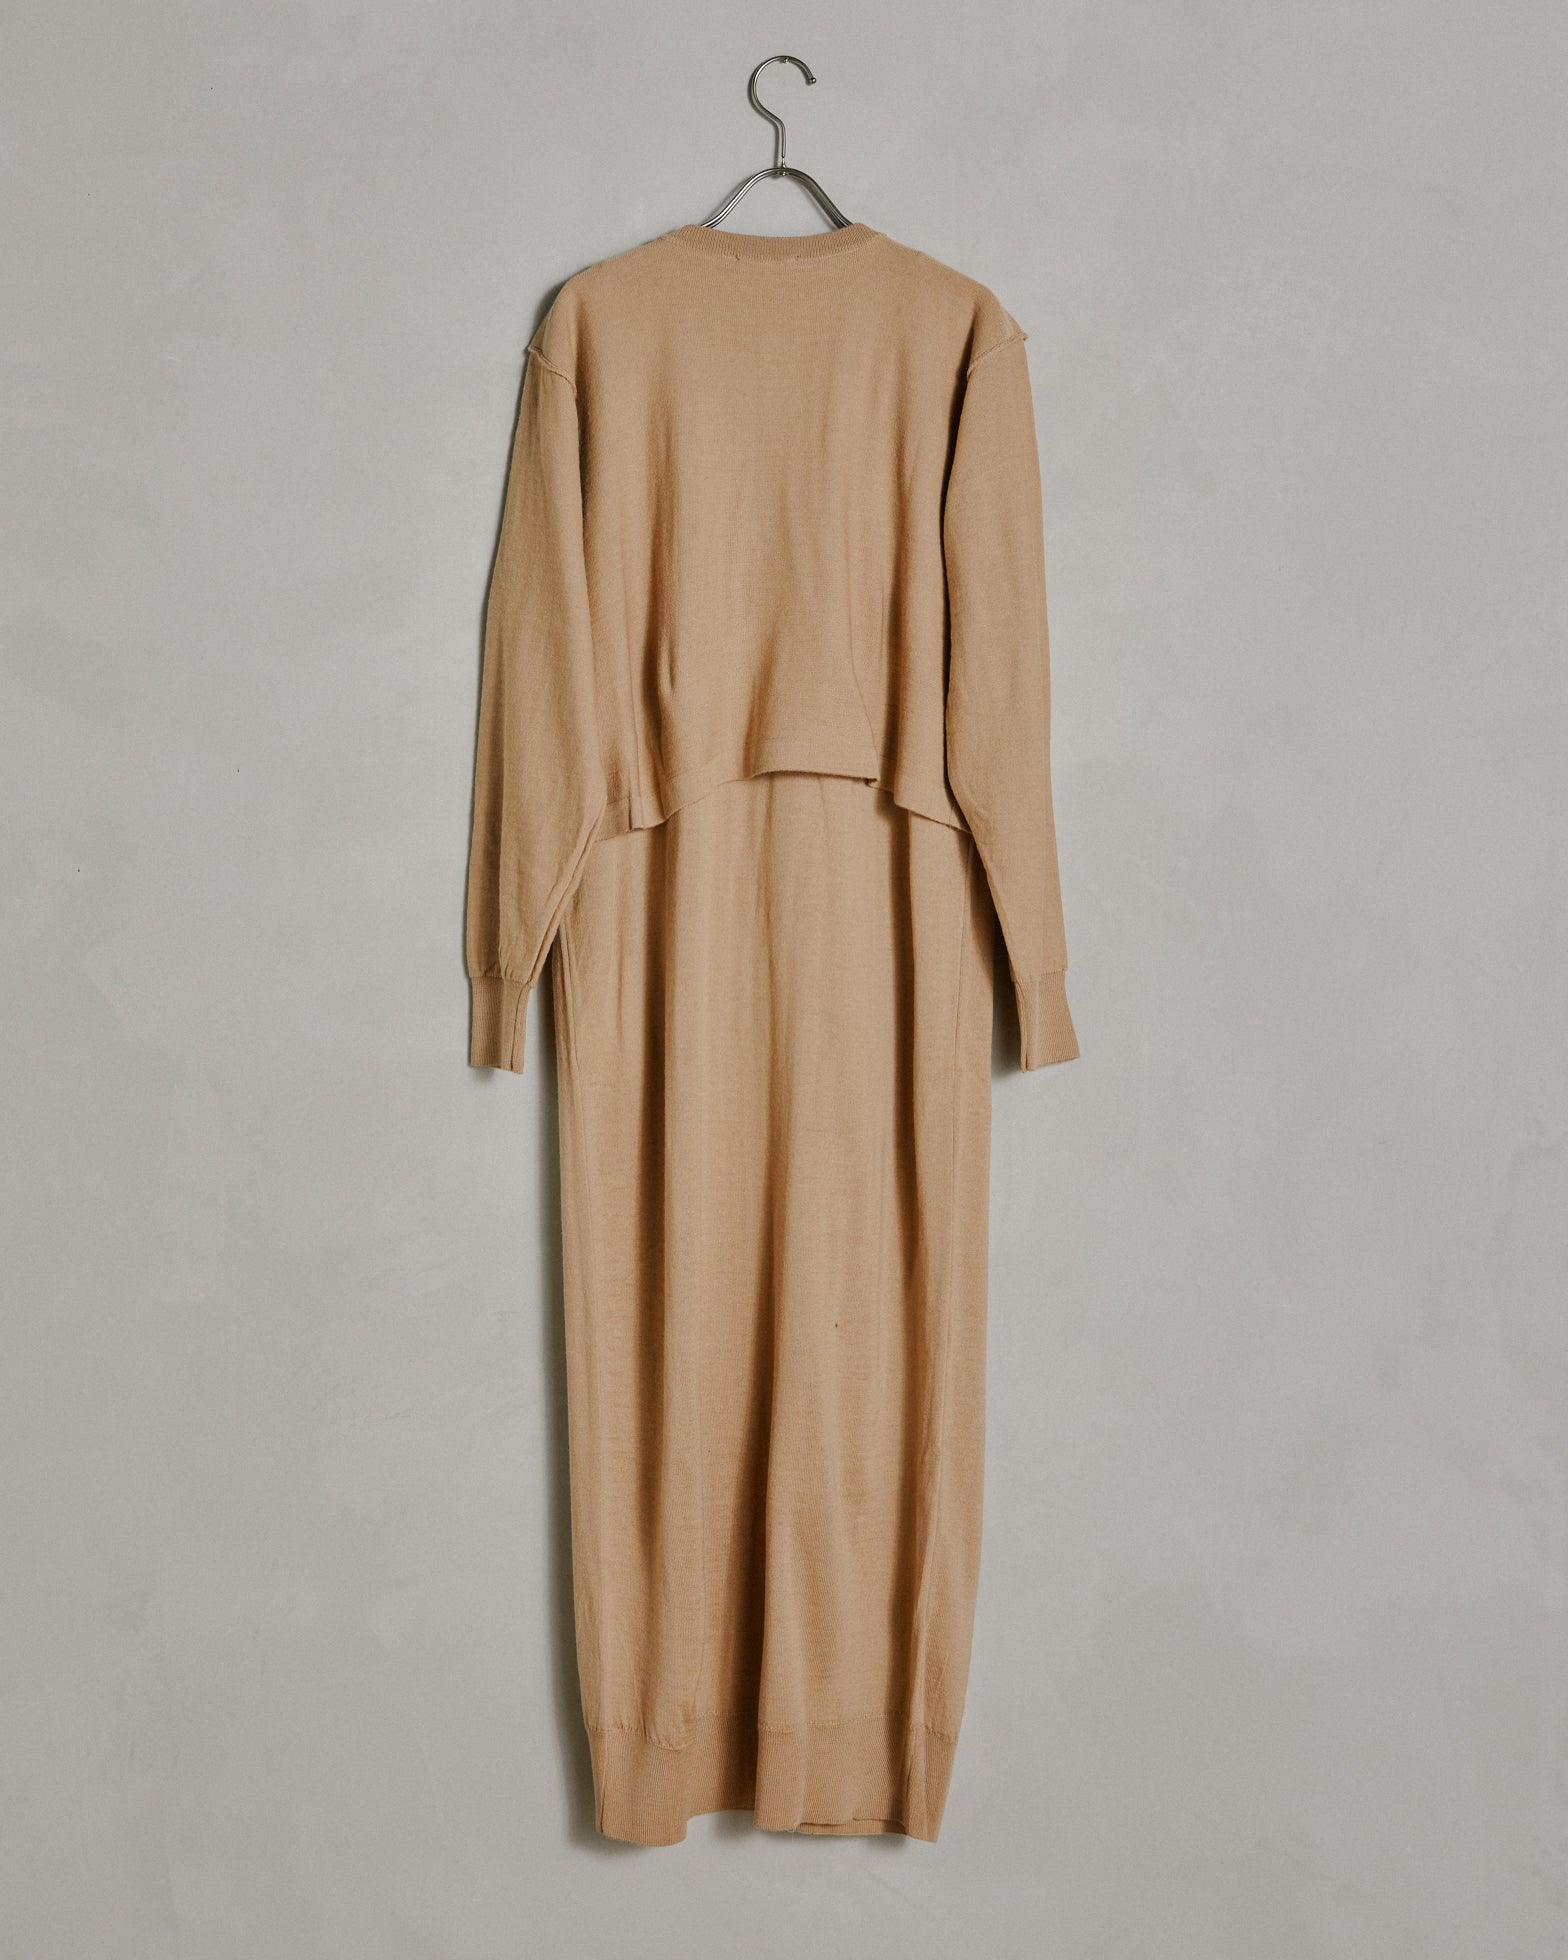 Cardigan Dress in Light Beige